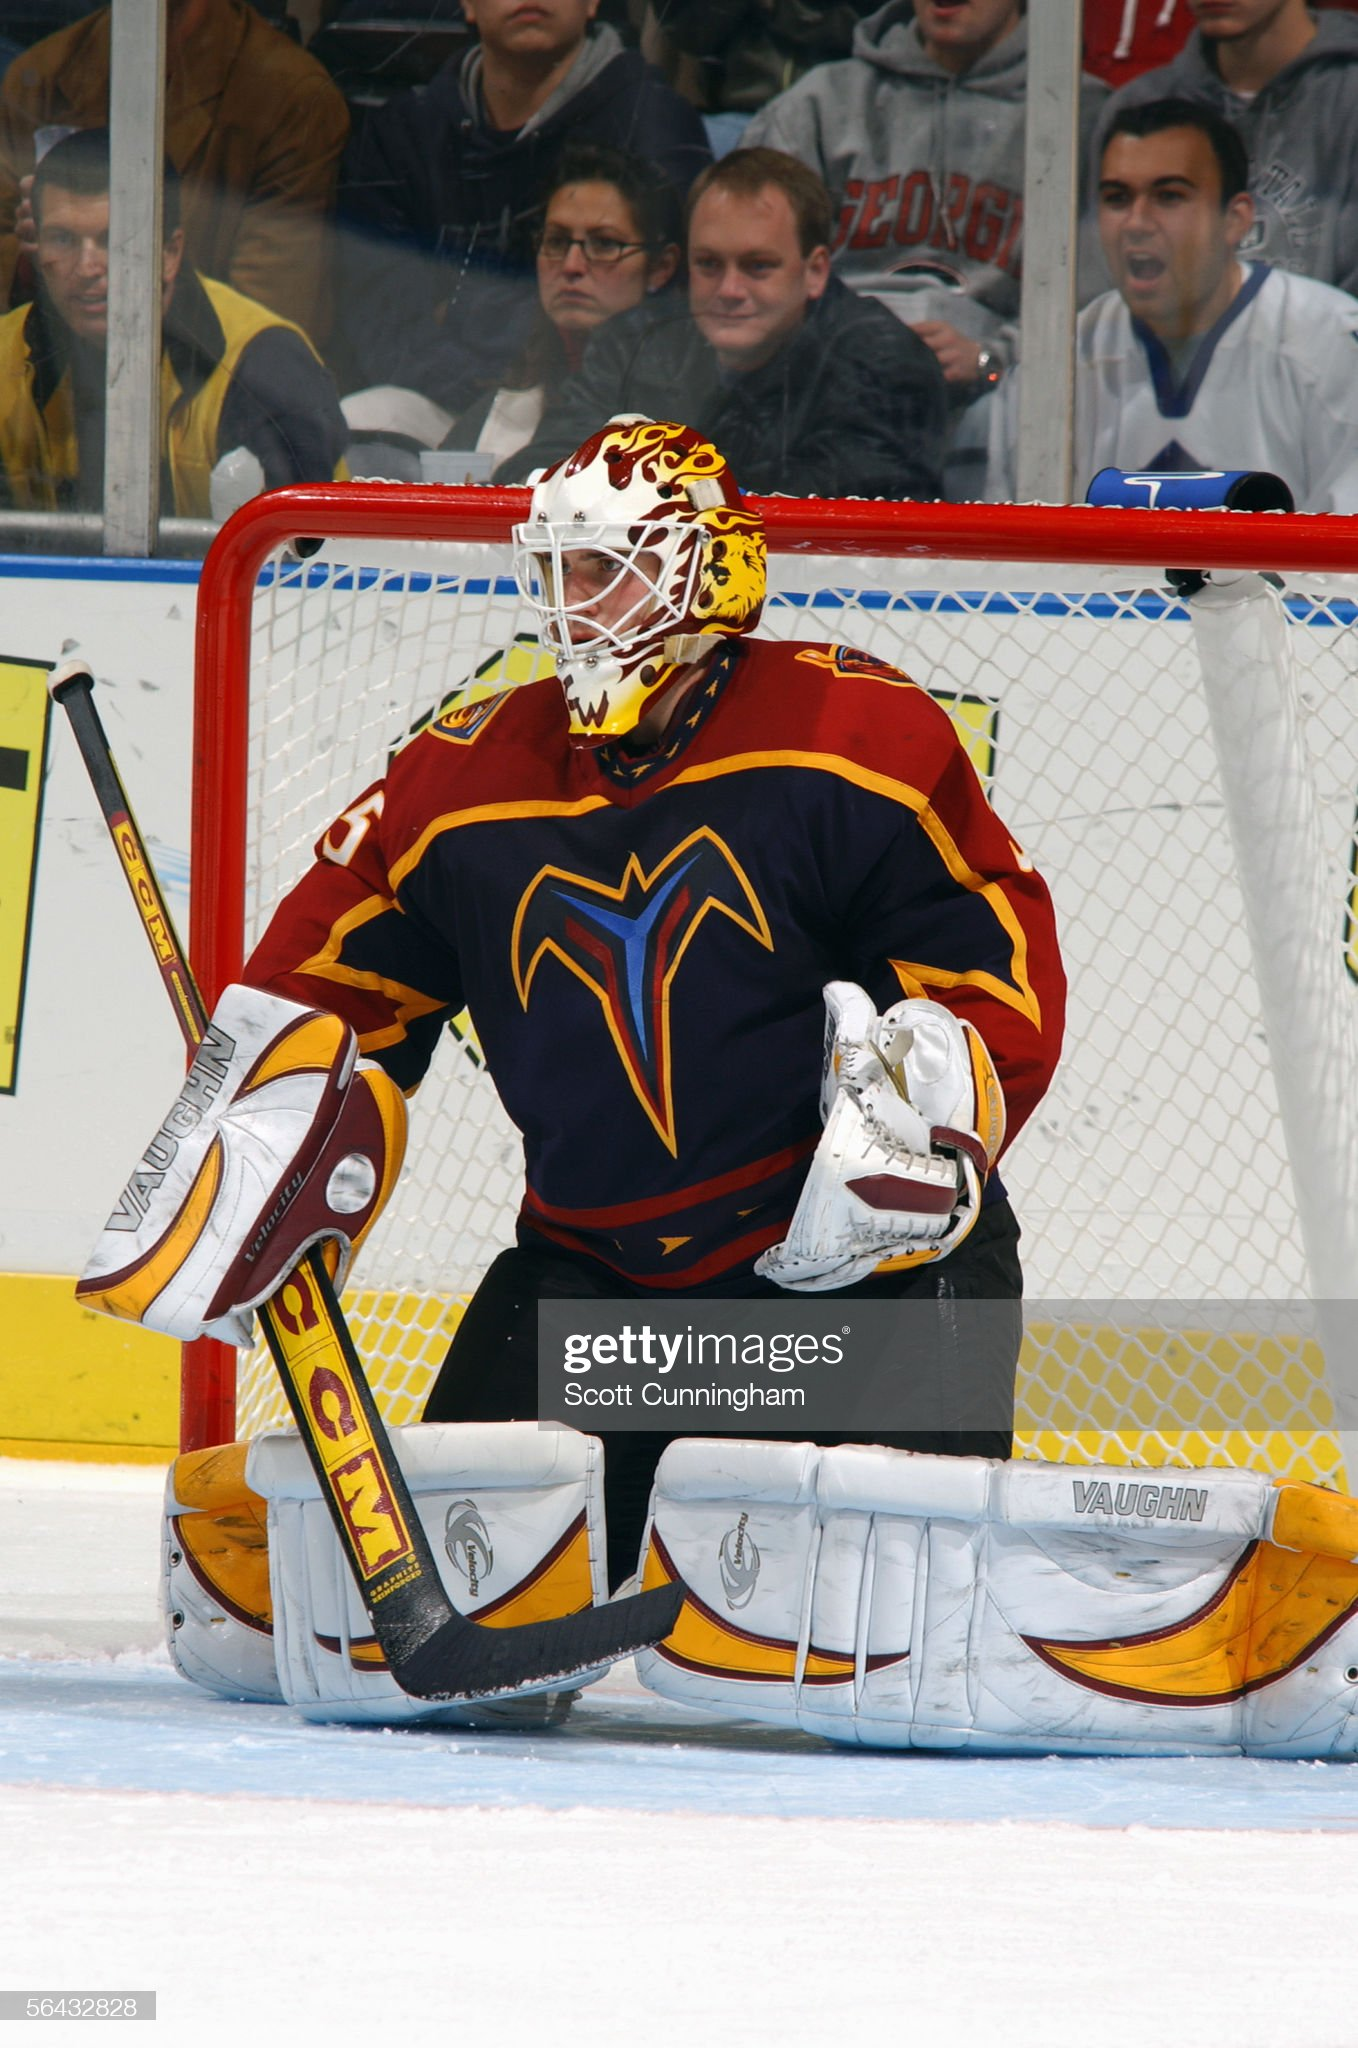 goaltender-michael-garnett-of-the-atlant